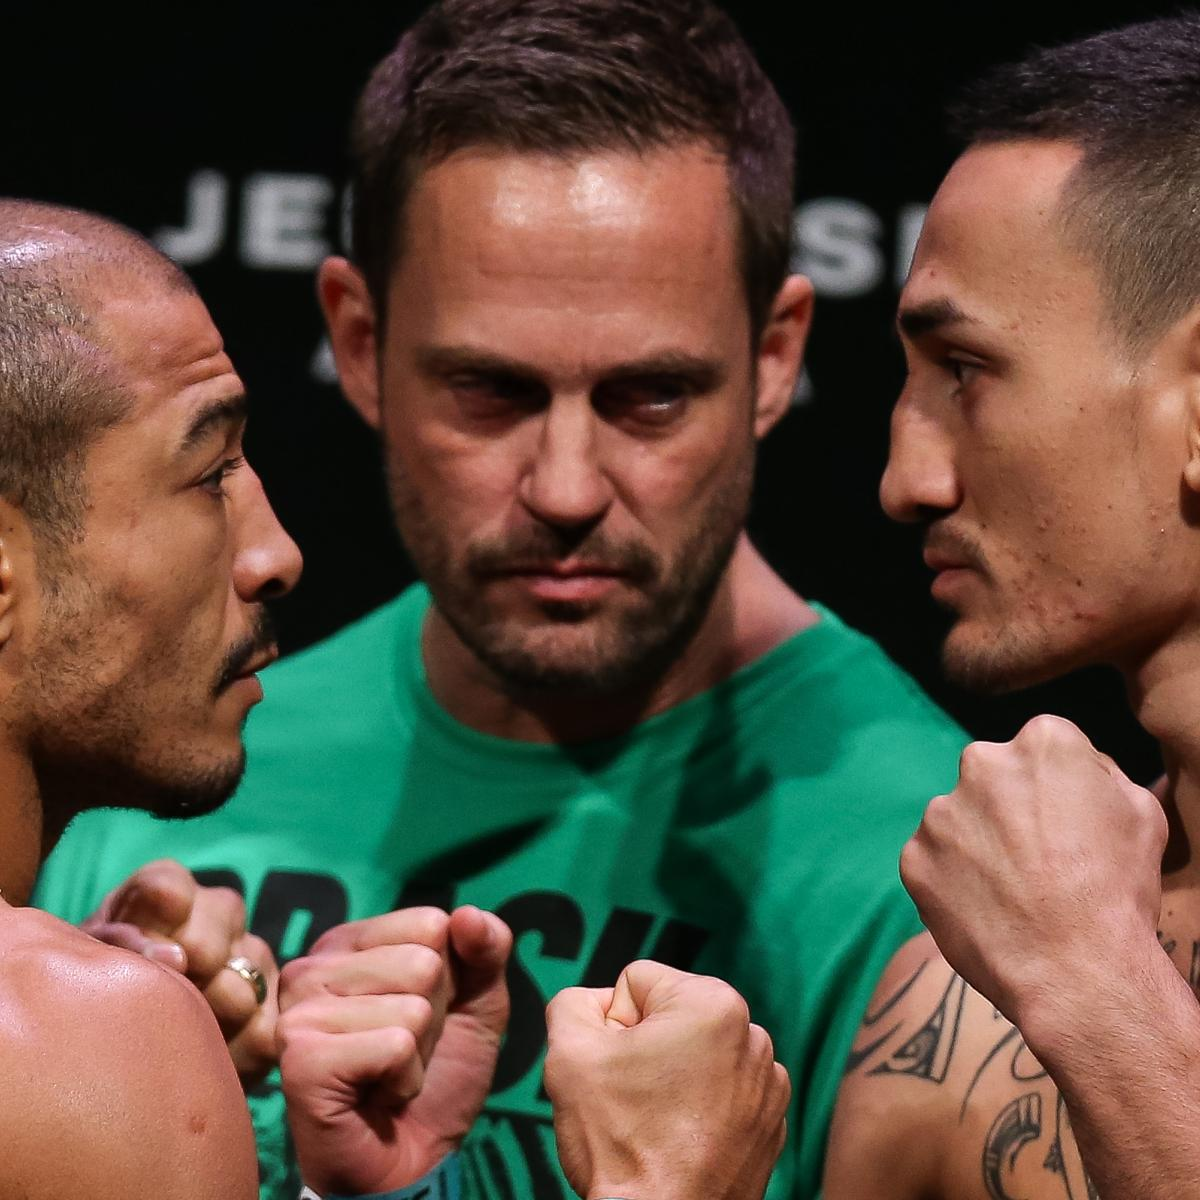 UFC 212 Fight Card: PPV Schedule, Odds and Predictions for Aldo vs. Holloway https://t.co/ABEBW4FyZF #mma #ufc https://t.co/3xyYAZmQ6I